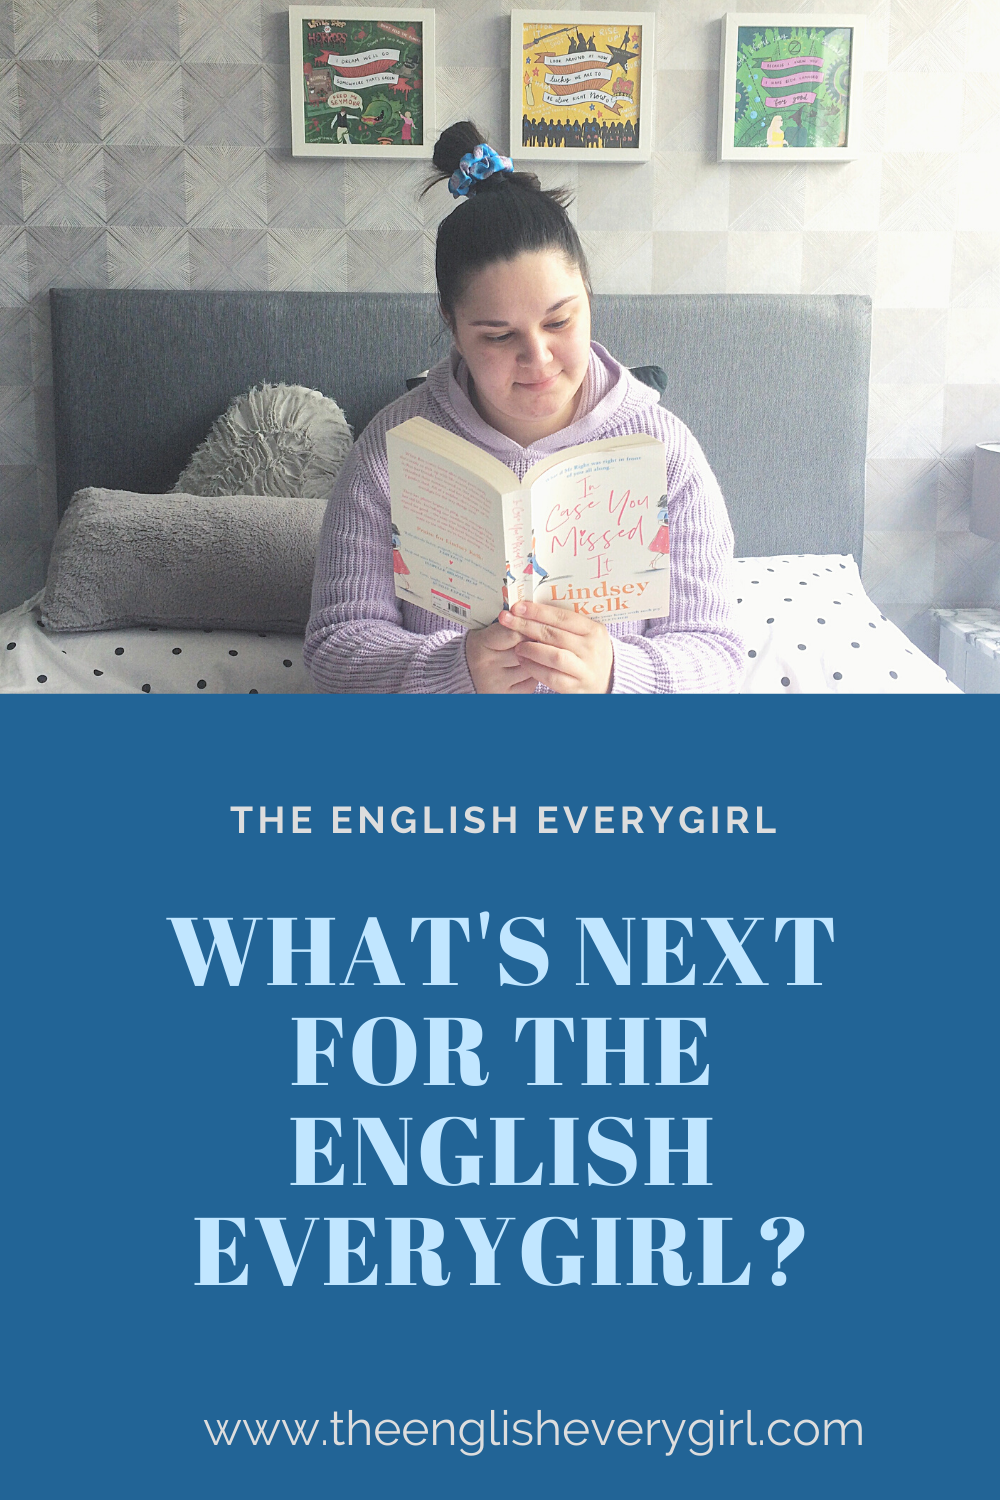 What's next for The English Everygirl Pinterest graphic.